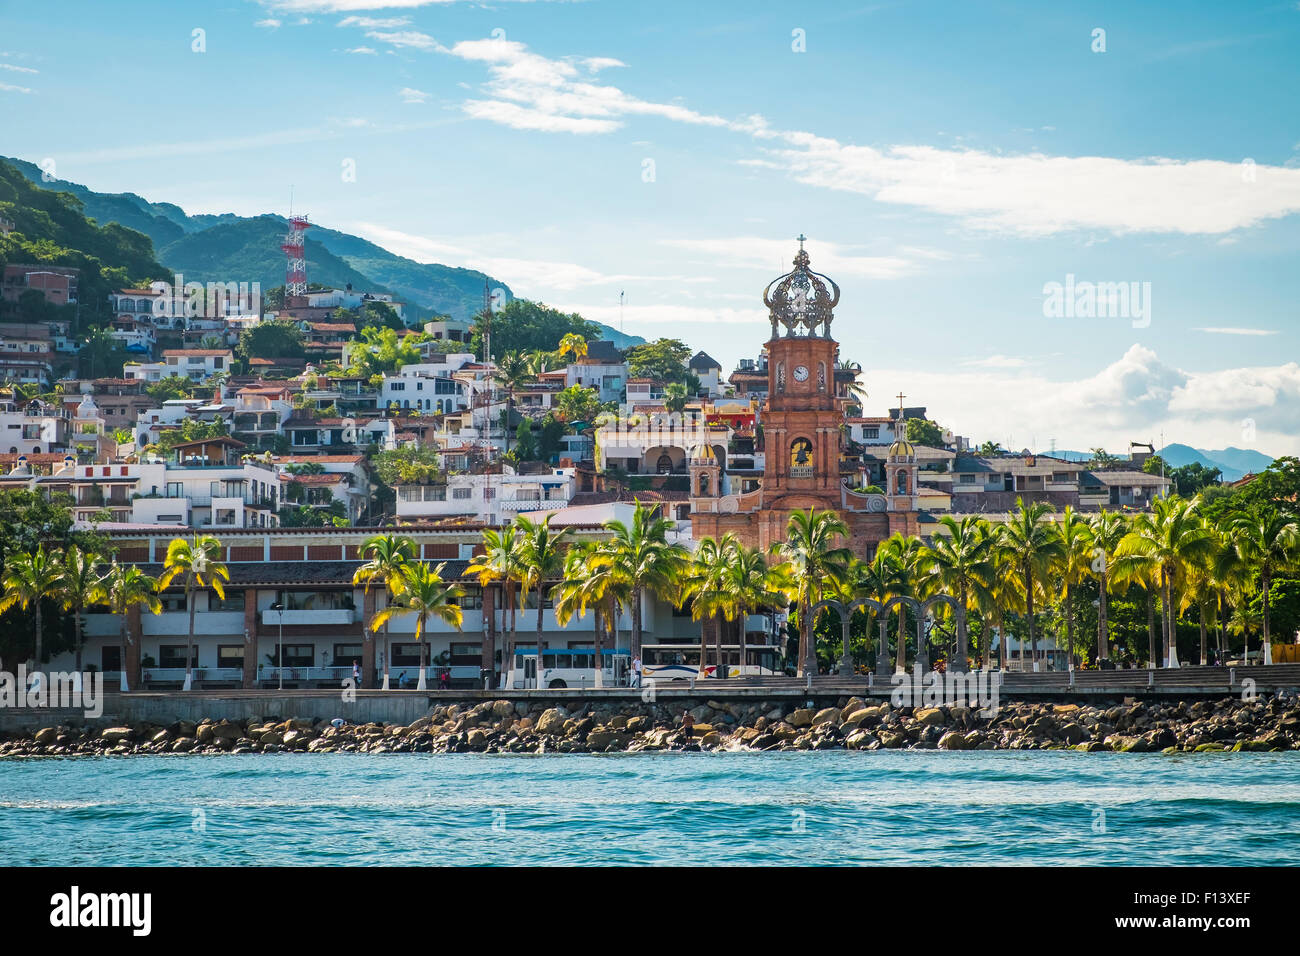 View at El Centro with church Our Lady of Guadalupe, Banderas Bay Coast Line, Puerto Vallarta, Mexico Stock Photo